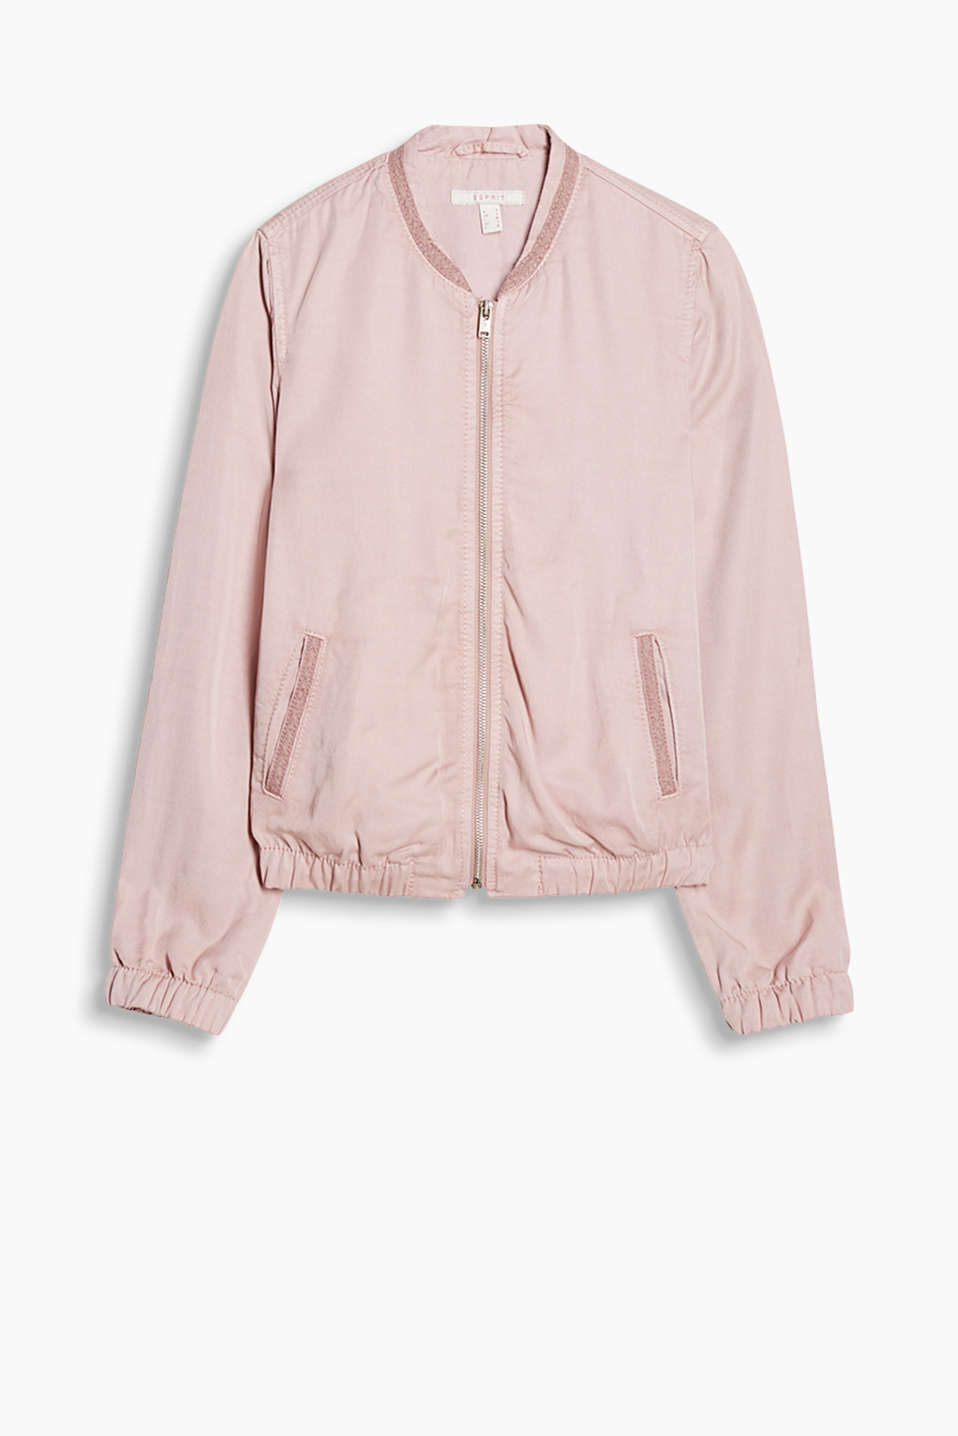 Flowing bomber jacket with a lace trim on the collar and pockets